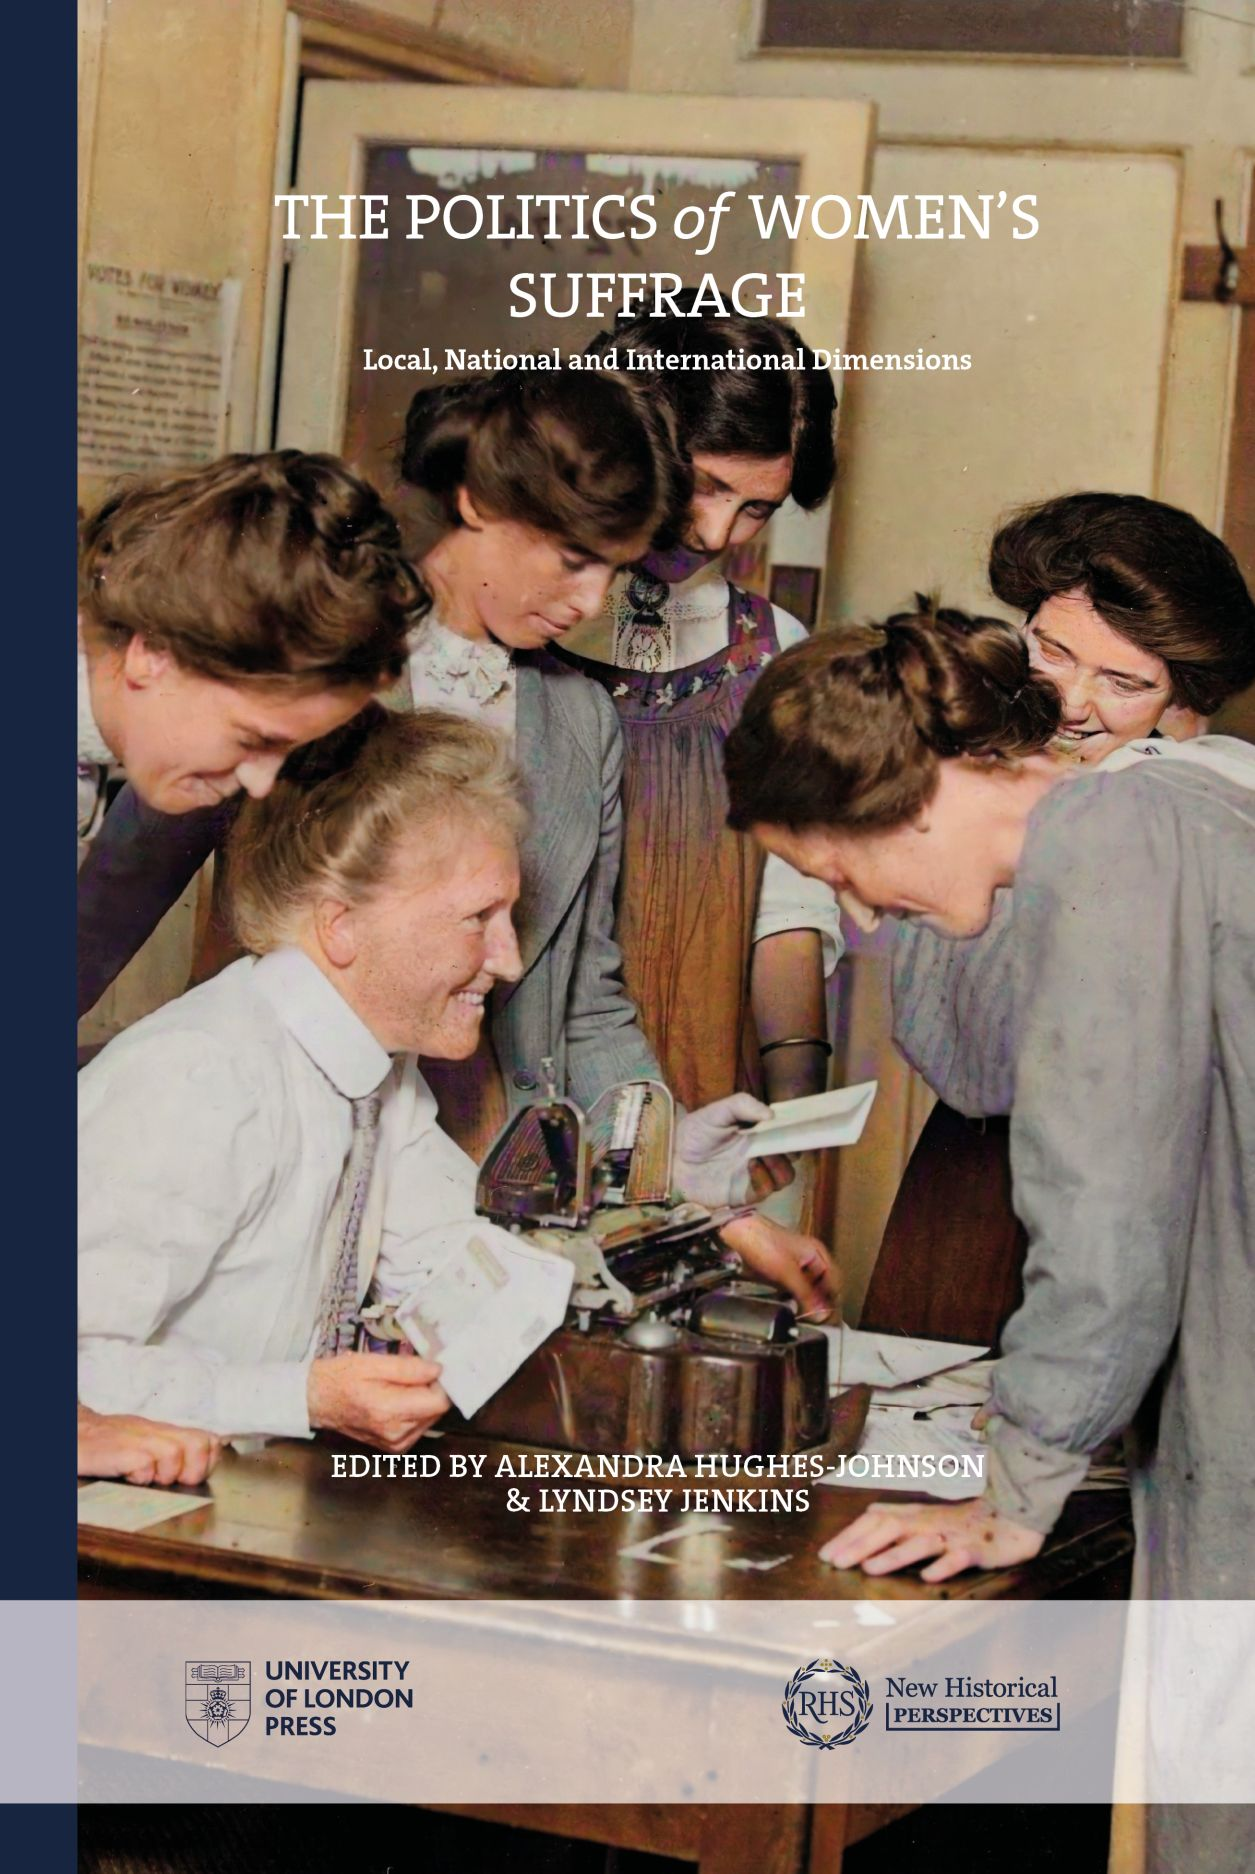 The Politics of Women's Suffrage